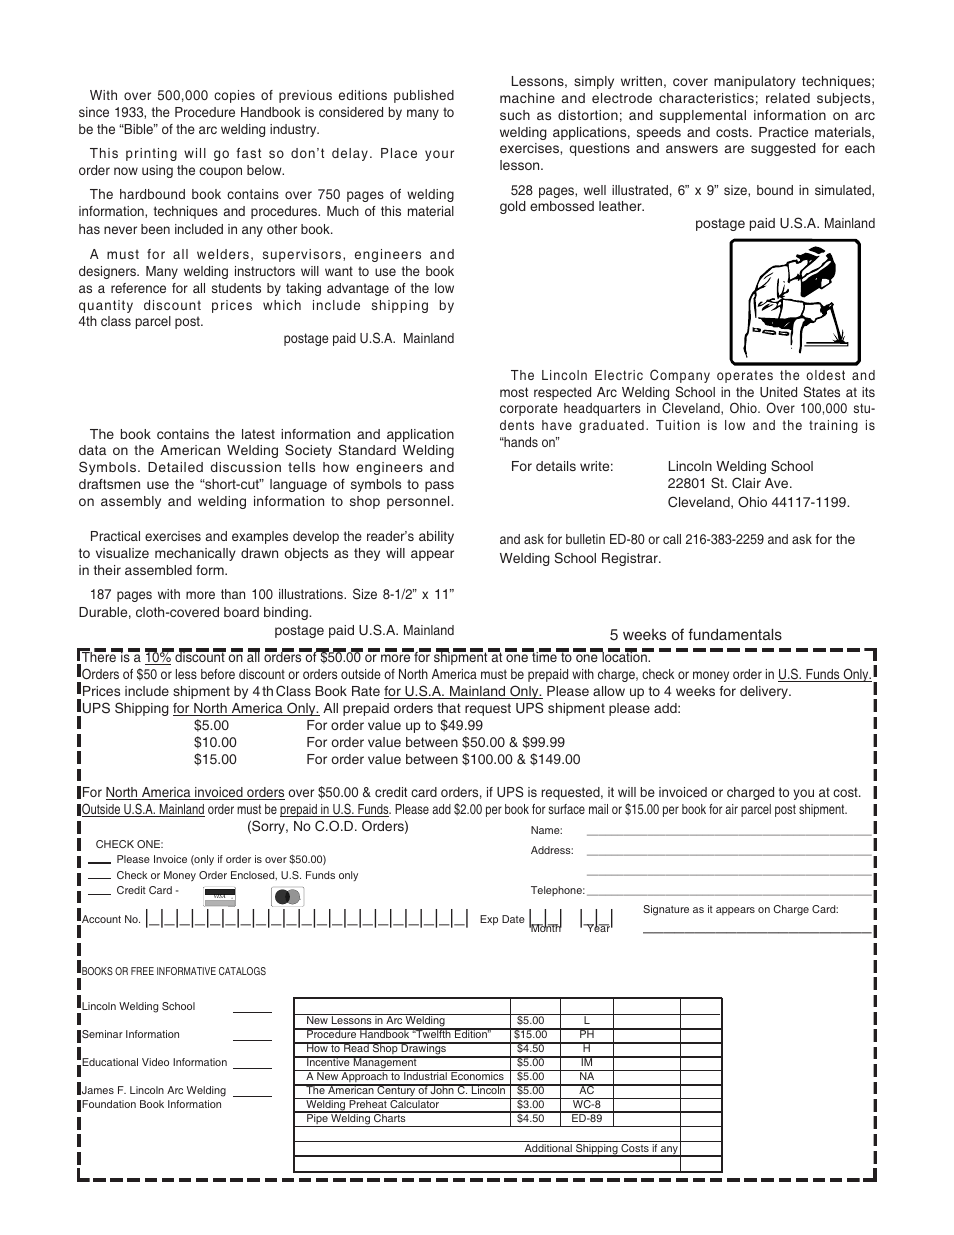 How To Read Shop Drawings New Lessons In Arc Welding Need Welding